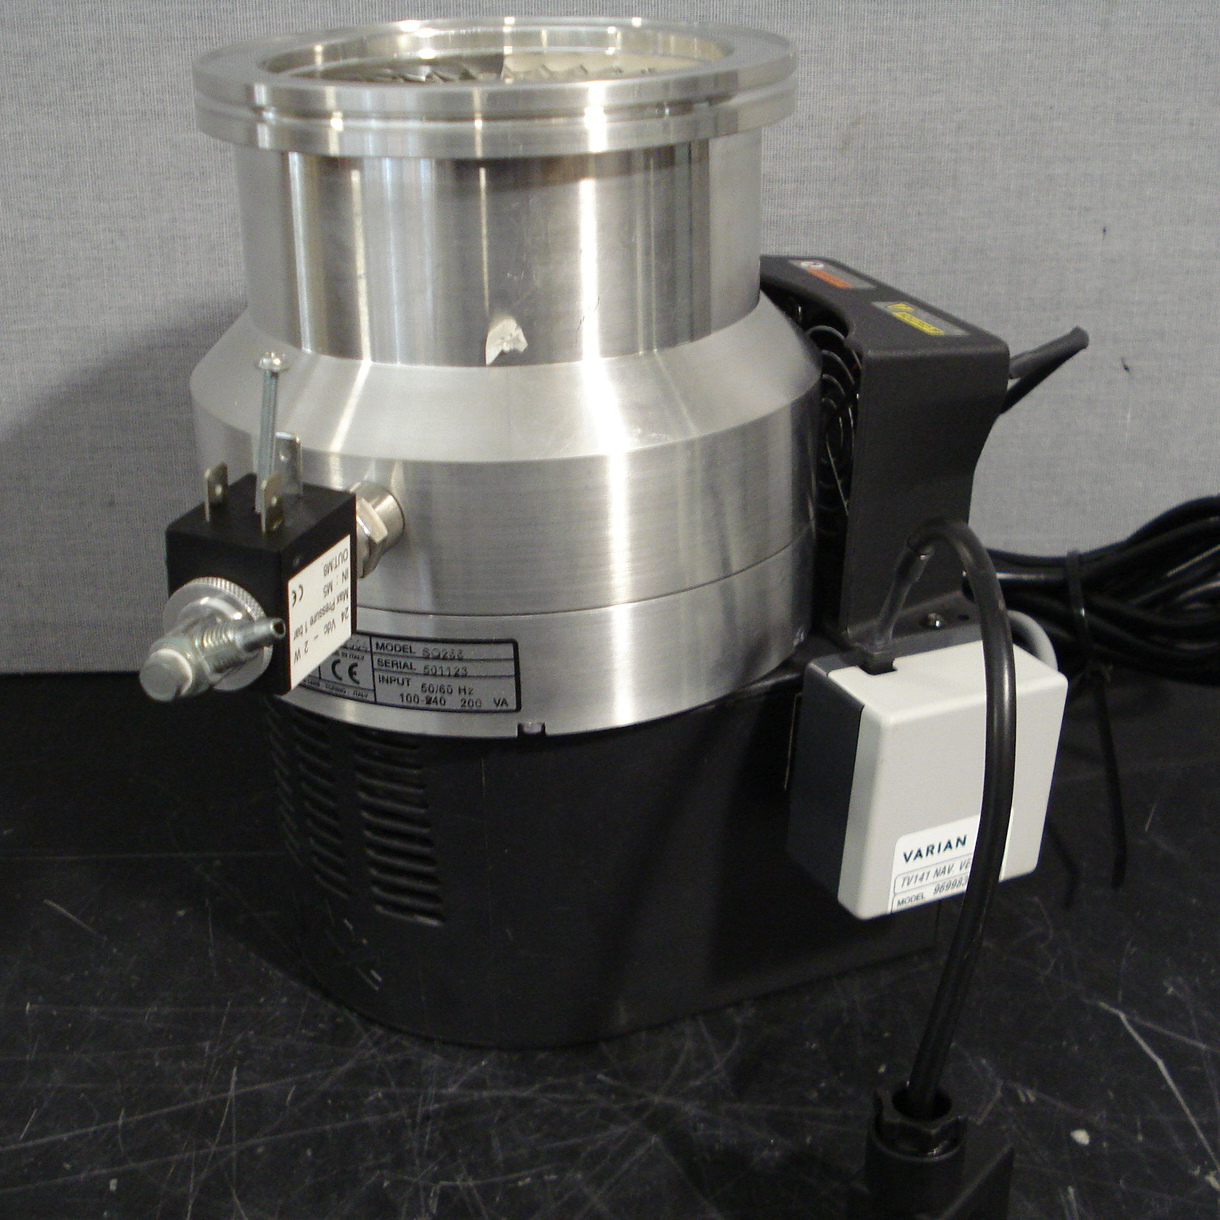 Varian Autoflex Turbo Pump Model SQ266 Image